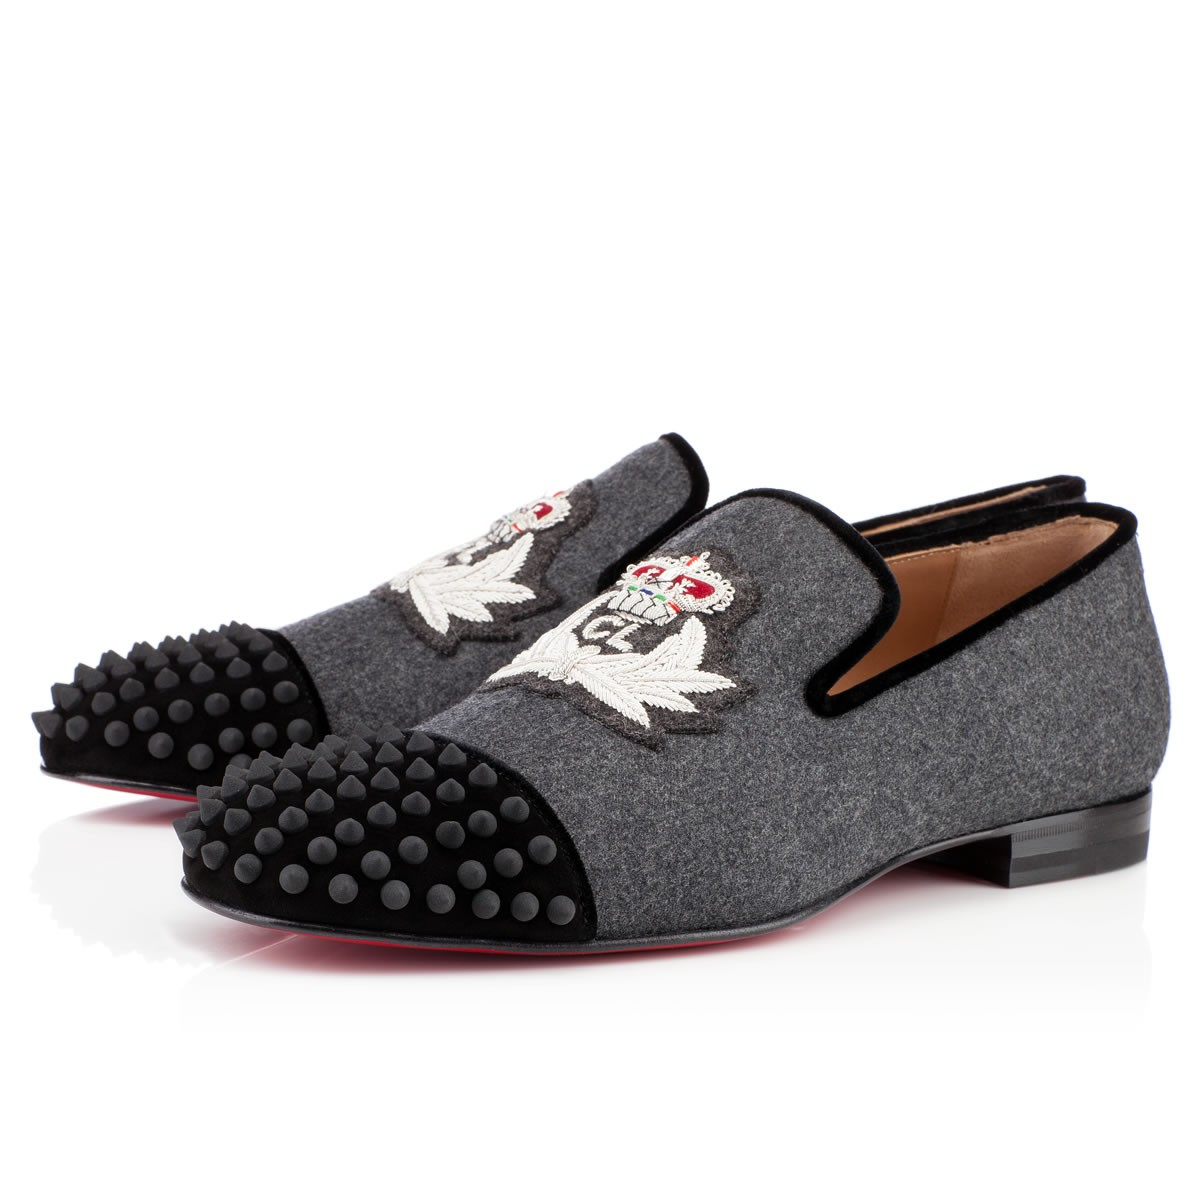 00O00 Menswear Blog: Christian Louboutin Harvanana loafers 2013